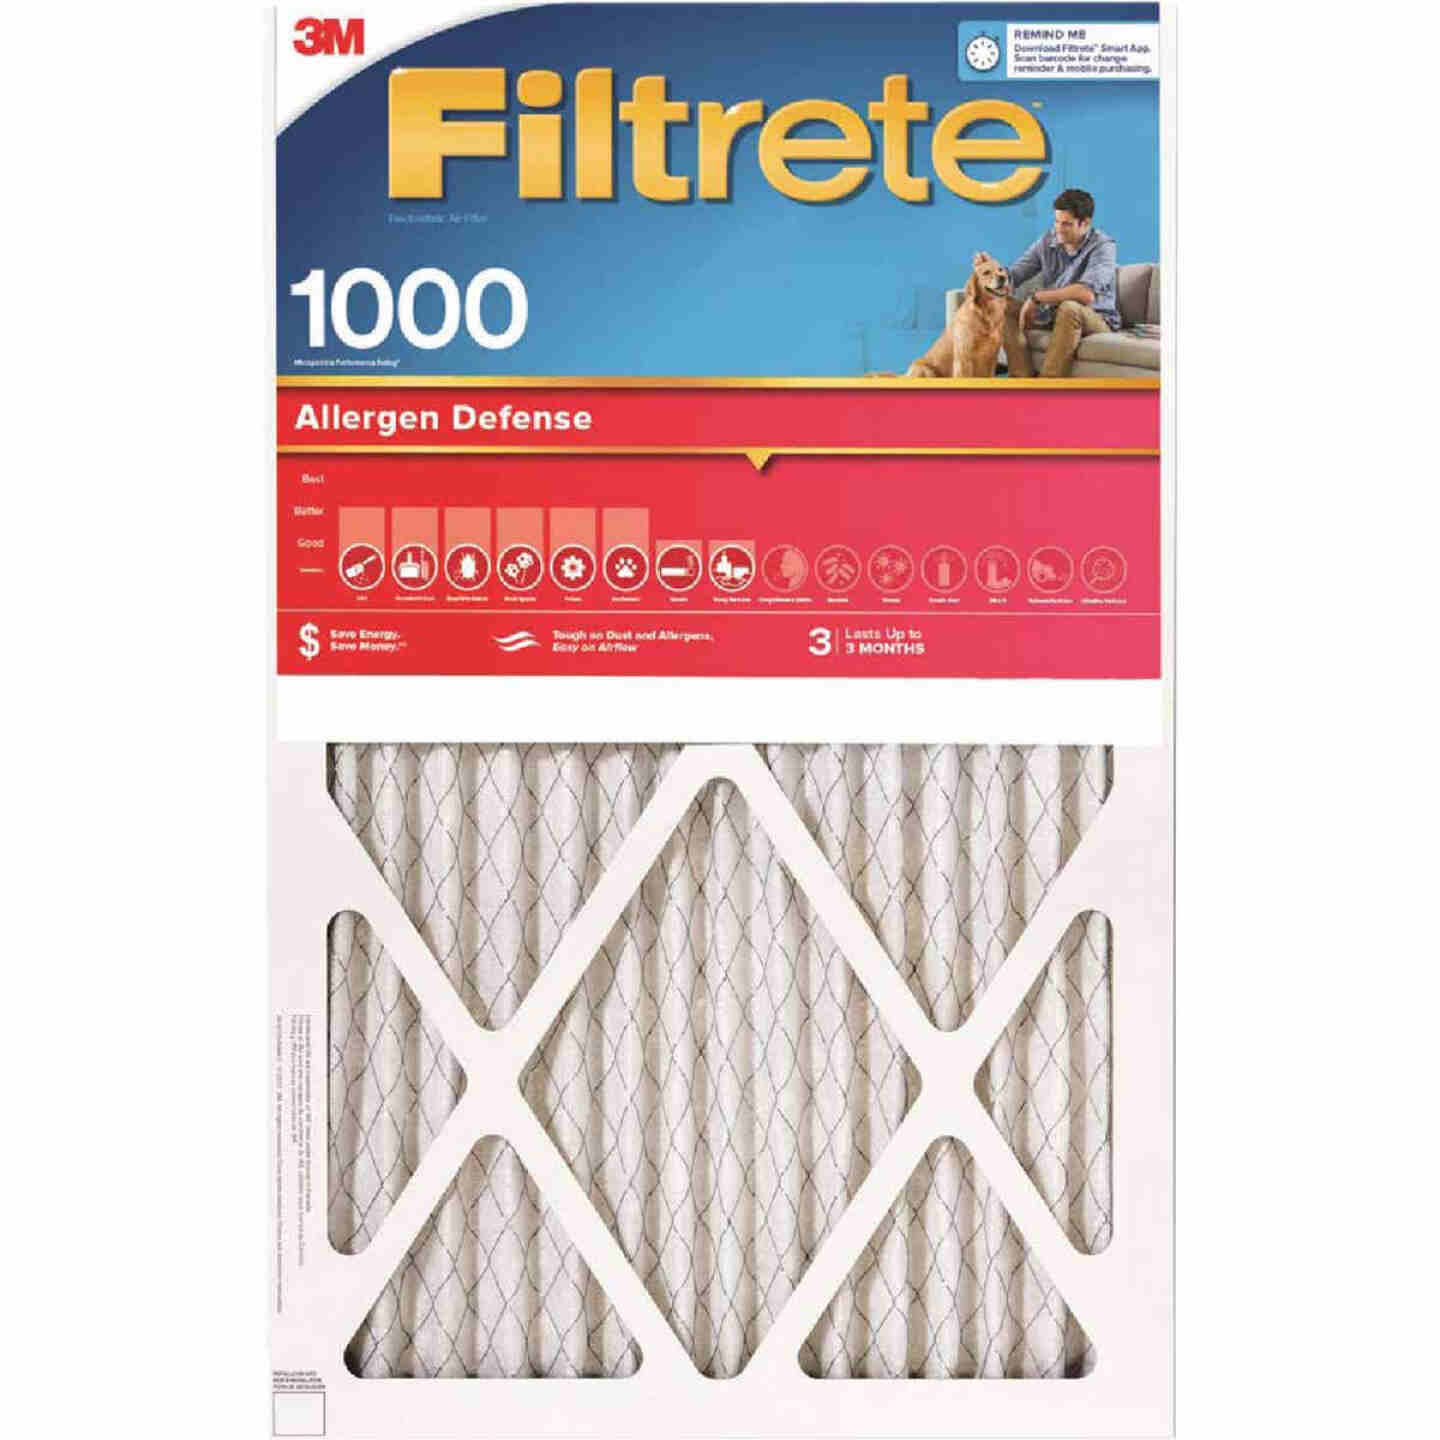 3M Filtrete 15 In. x 20 In. x 1 In. Allergen Defense 1000/1085 MPR Furnace Filter Image 1